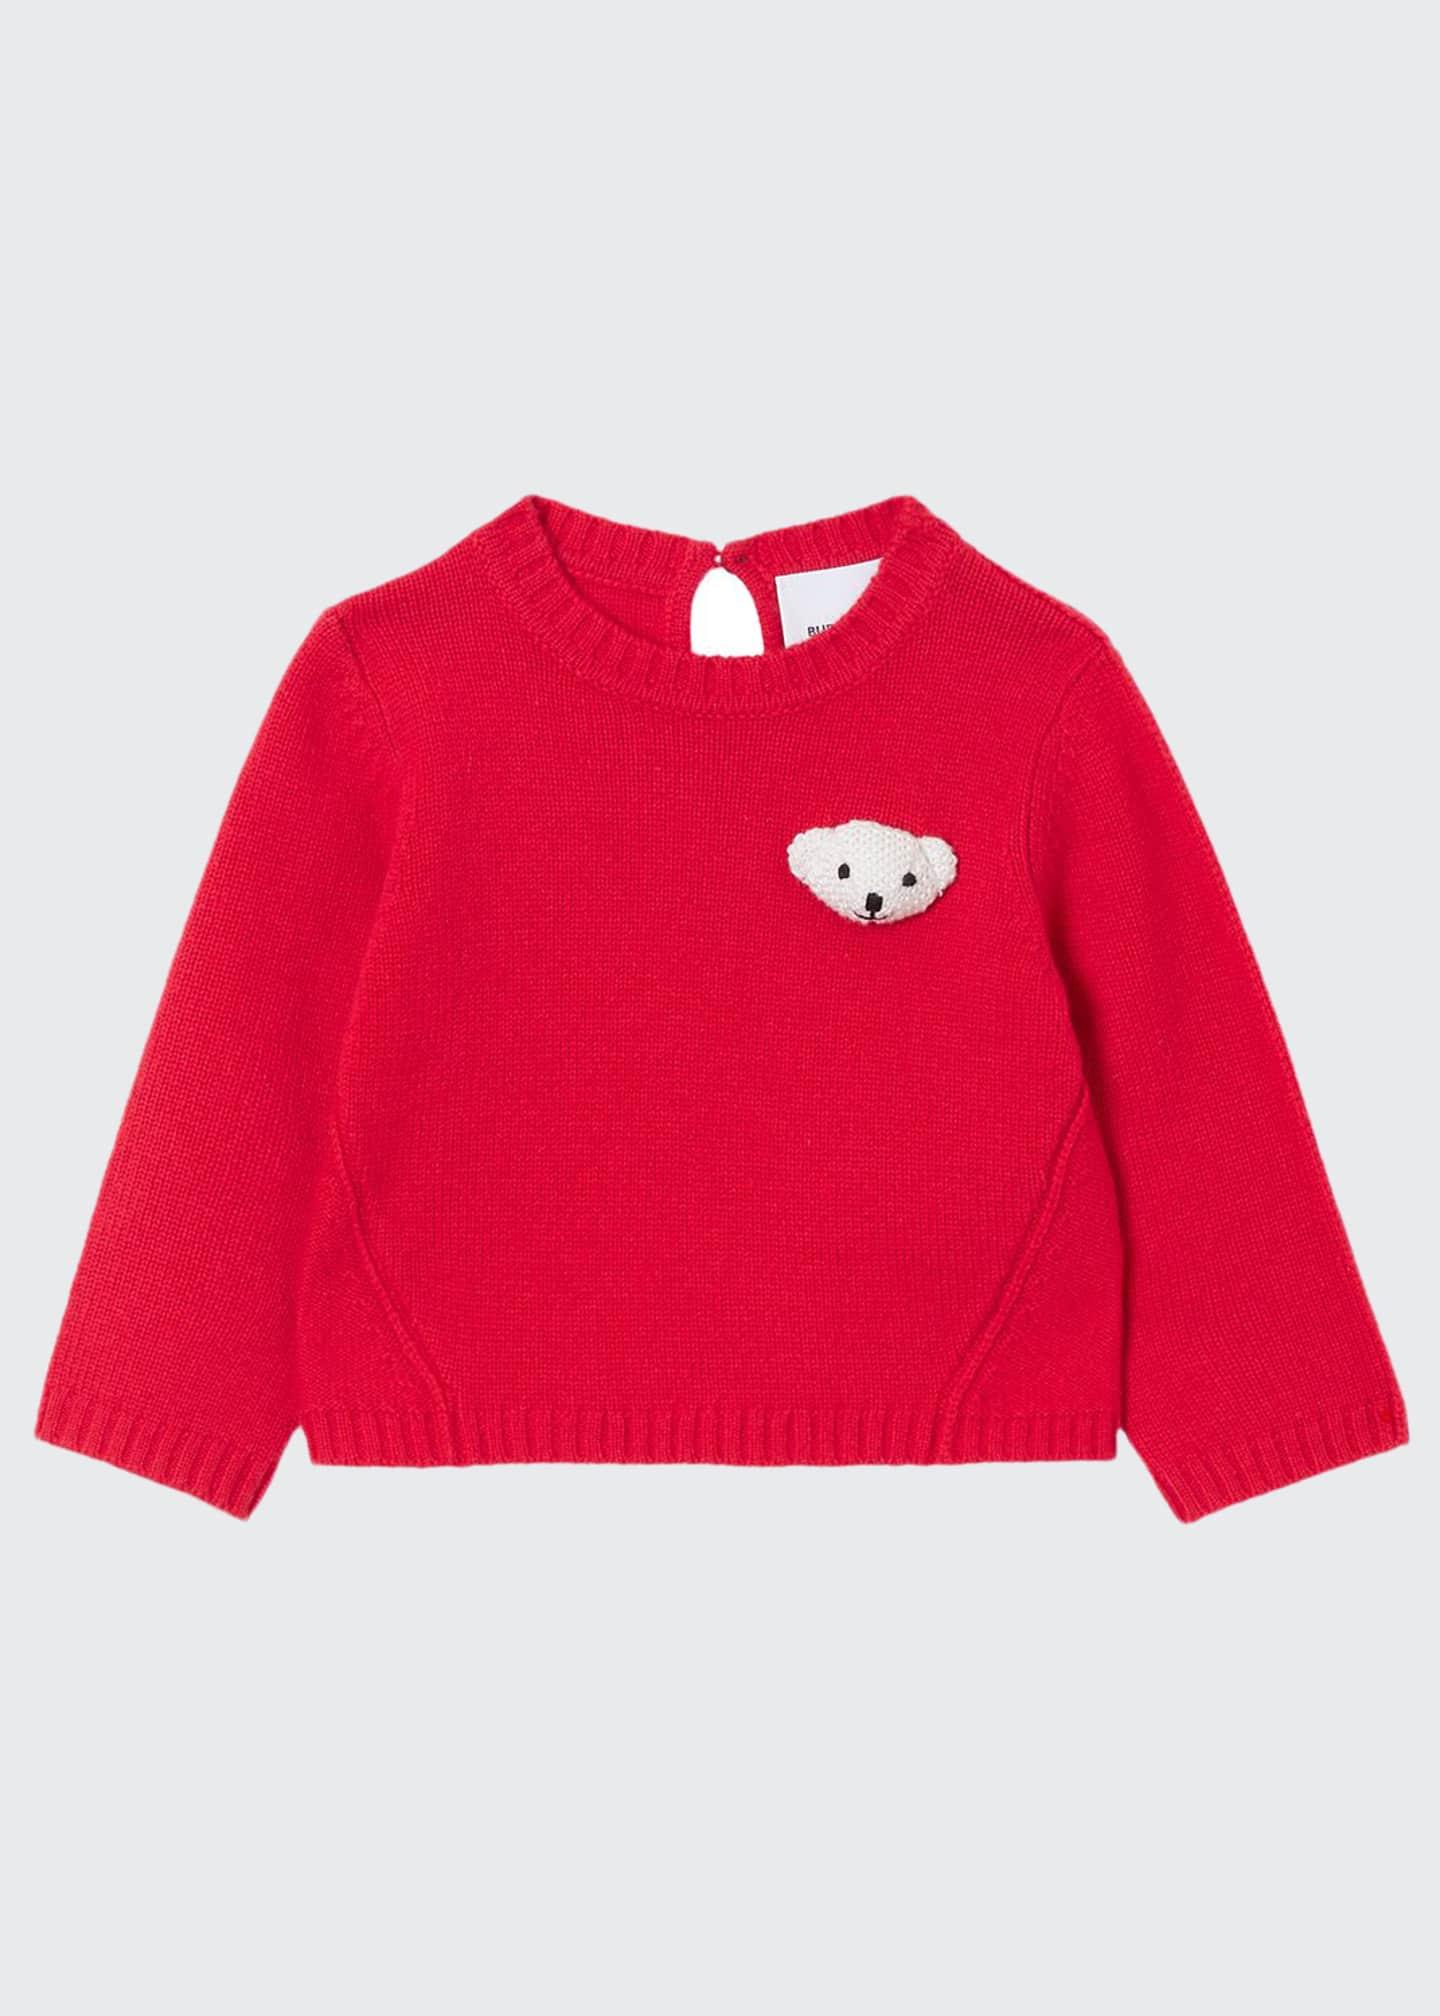 Burberry Boy's Gert Teddy Bear Sweater, Size 6M-2